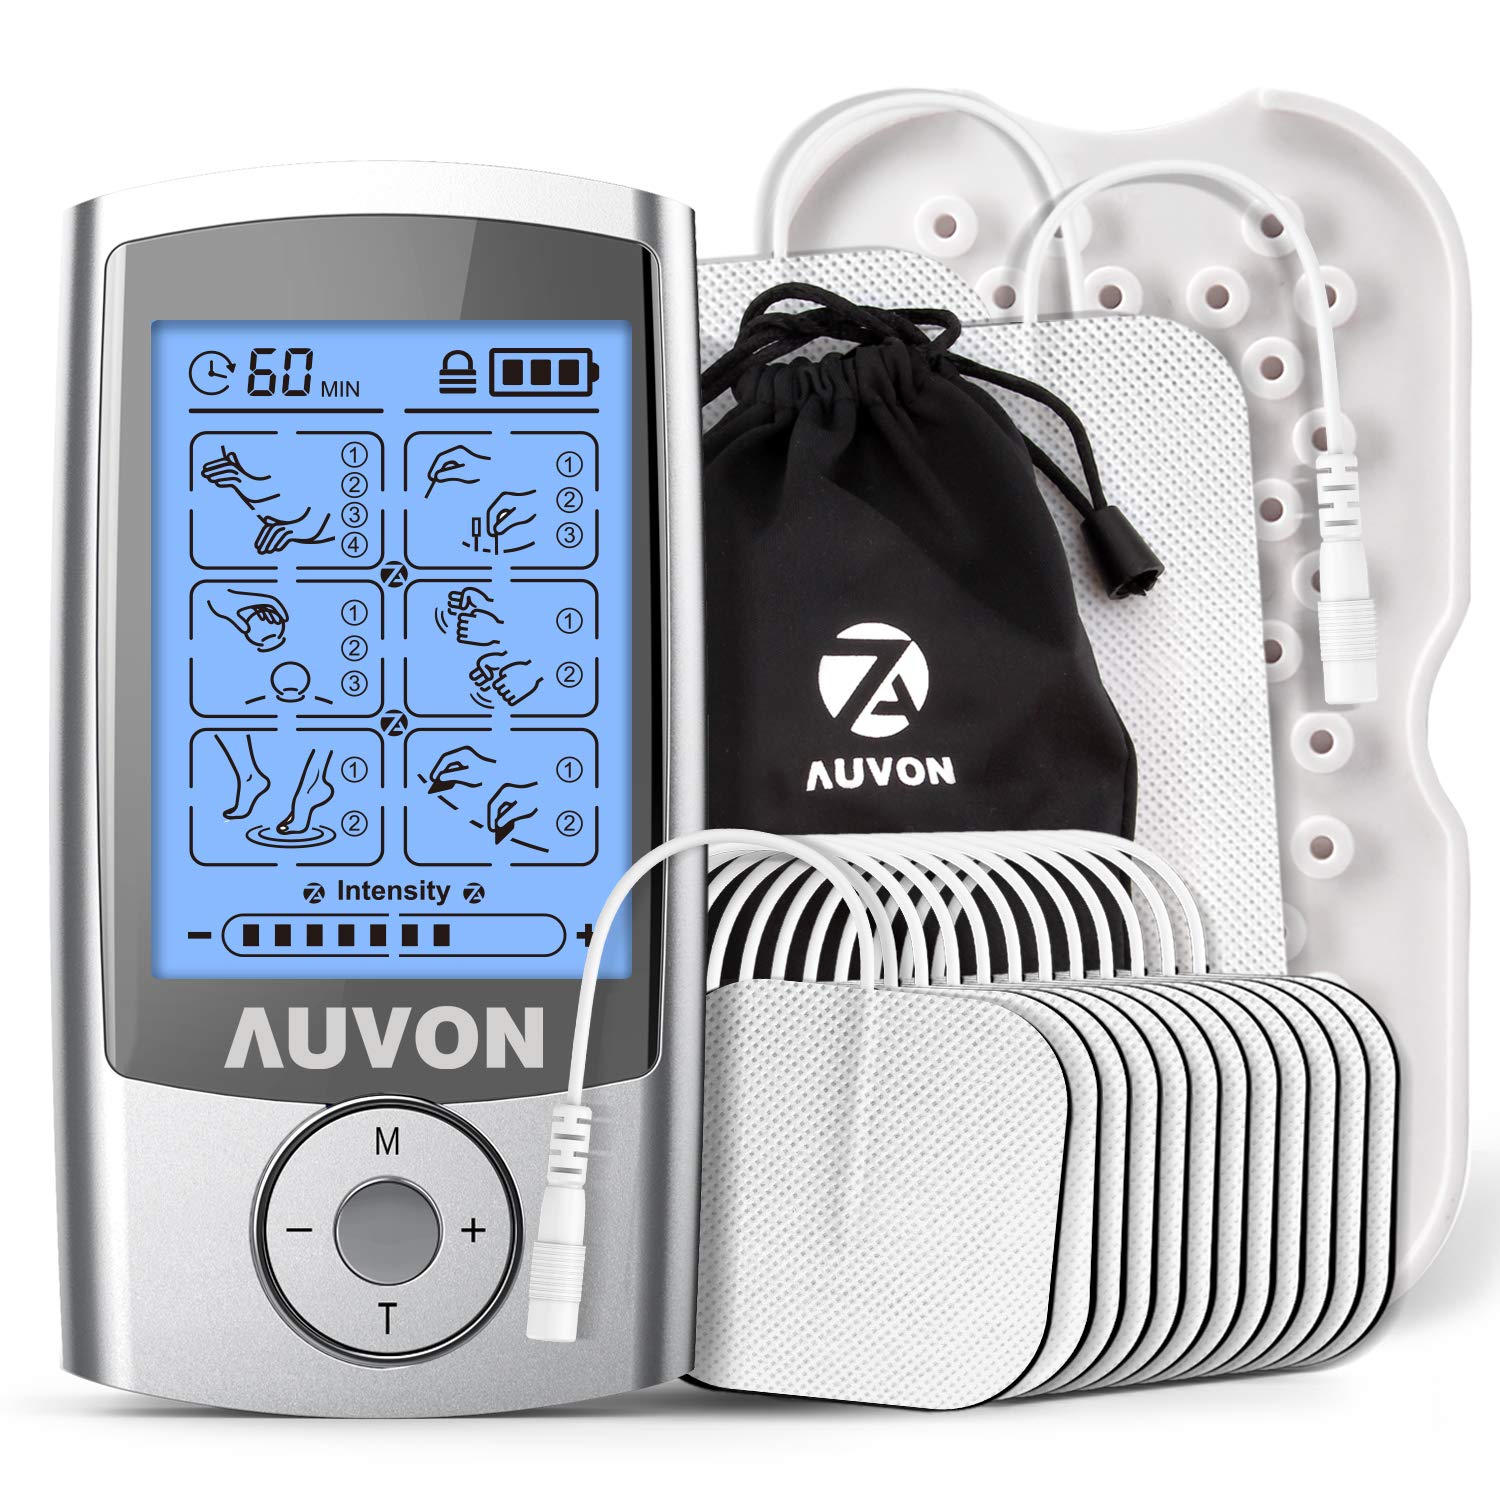 AUVON Rechargeable TENS Unit Muscle Stimulator, 2nd Gen16 Modes TENS Machine with Upgraded Self-Adhesive Reusable TENS Electrodes Pads (2''x2'' 12pcs, 2''x4'' 2pcs) by AUVON (Image #1)